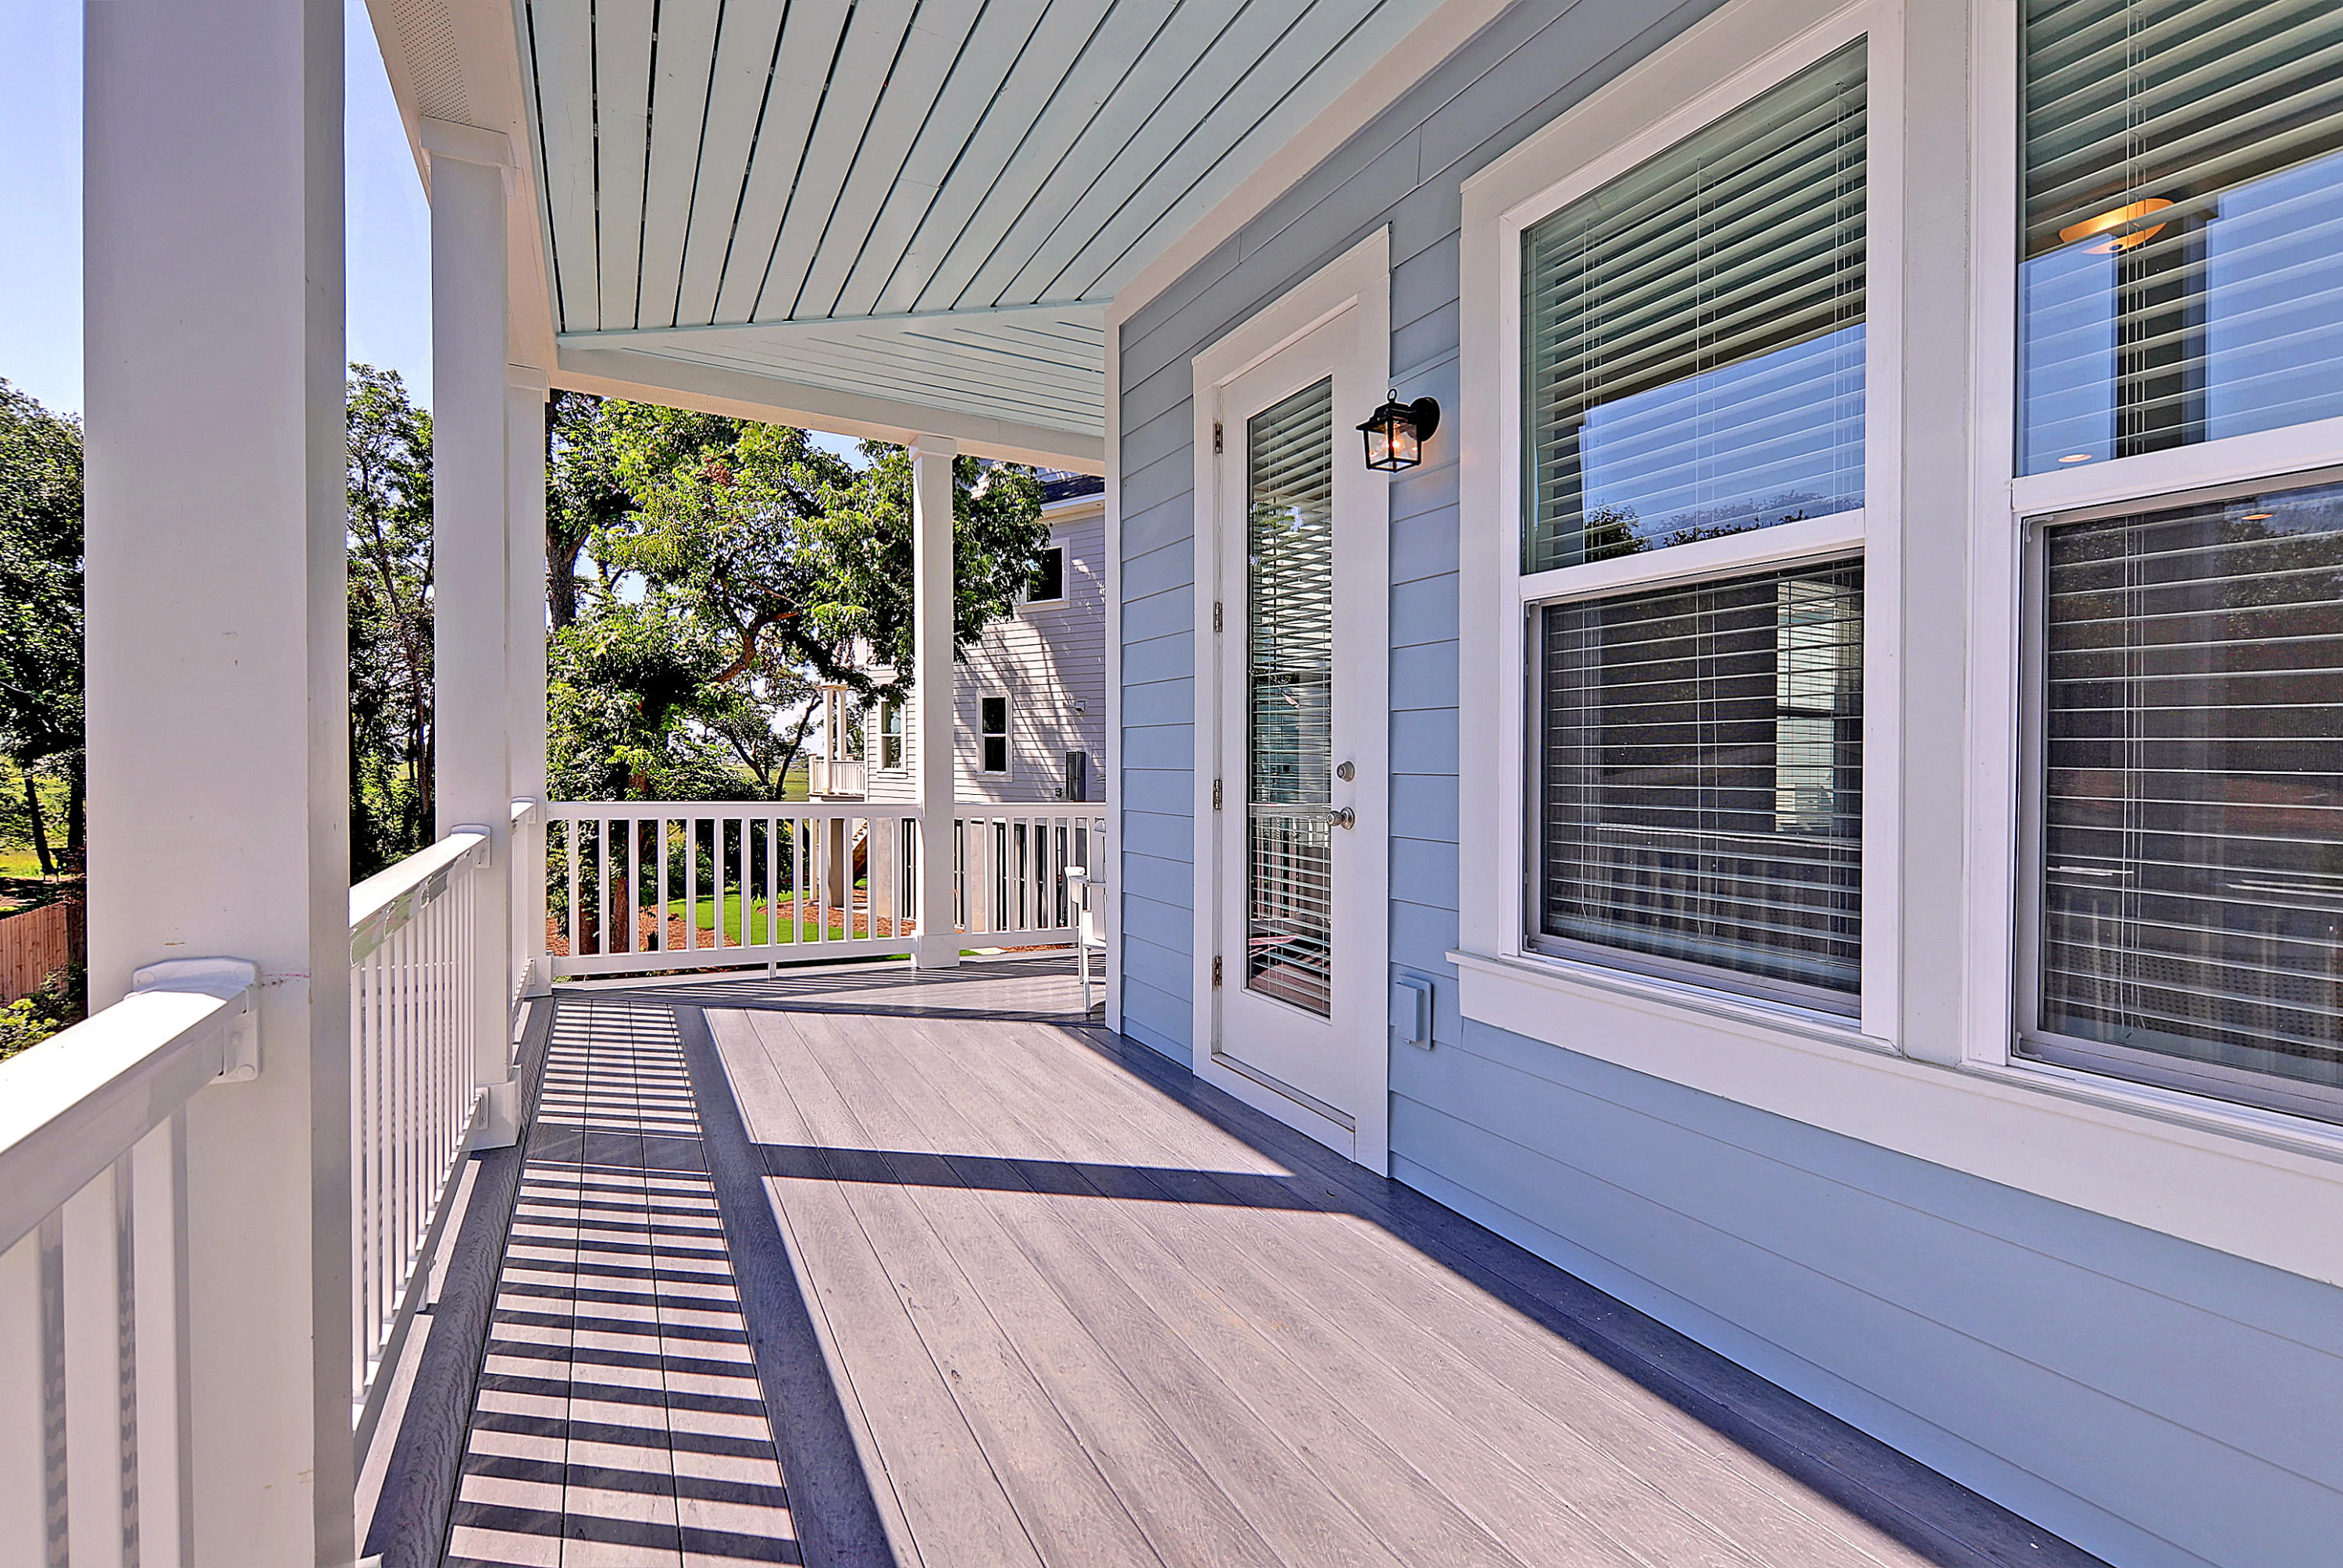 Sable On The Marsh Homes For Sale - 124 Howard Mary, Charleston, SC - 14